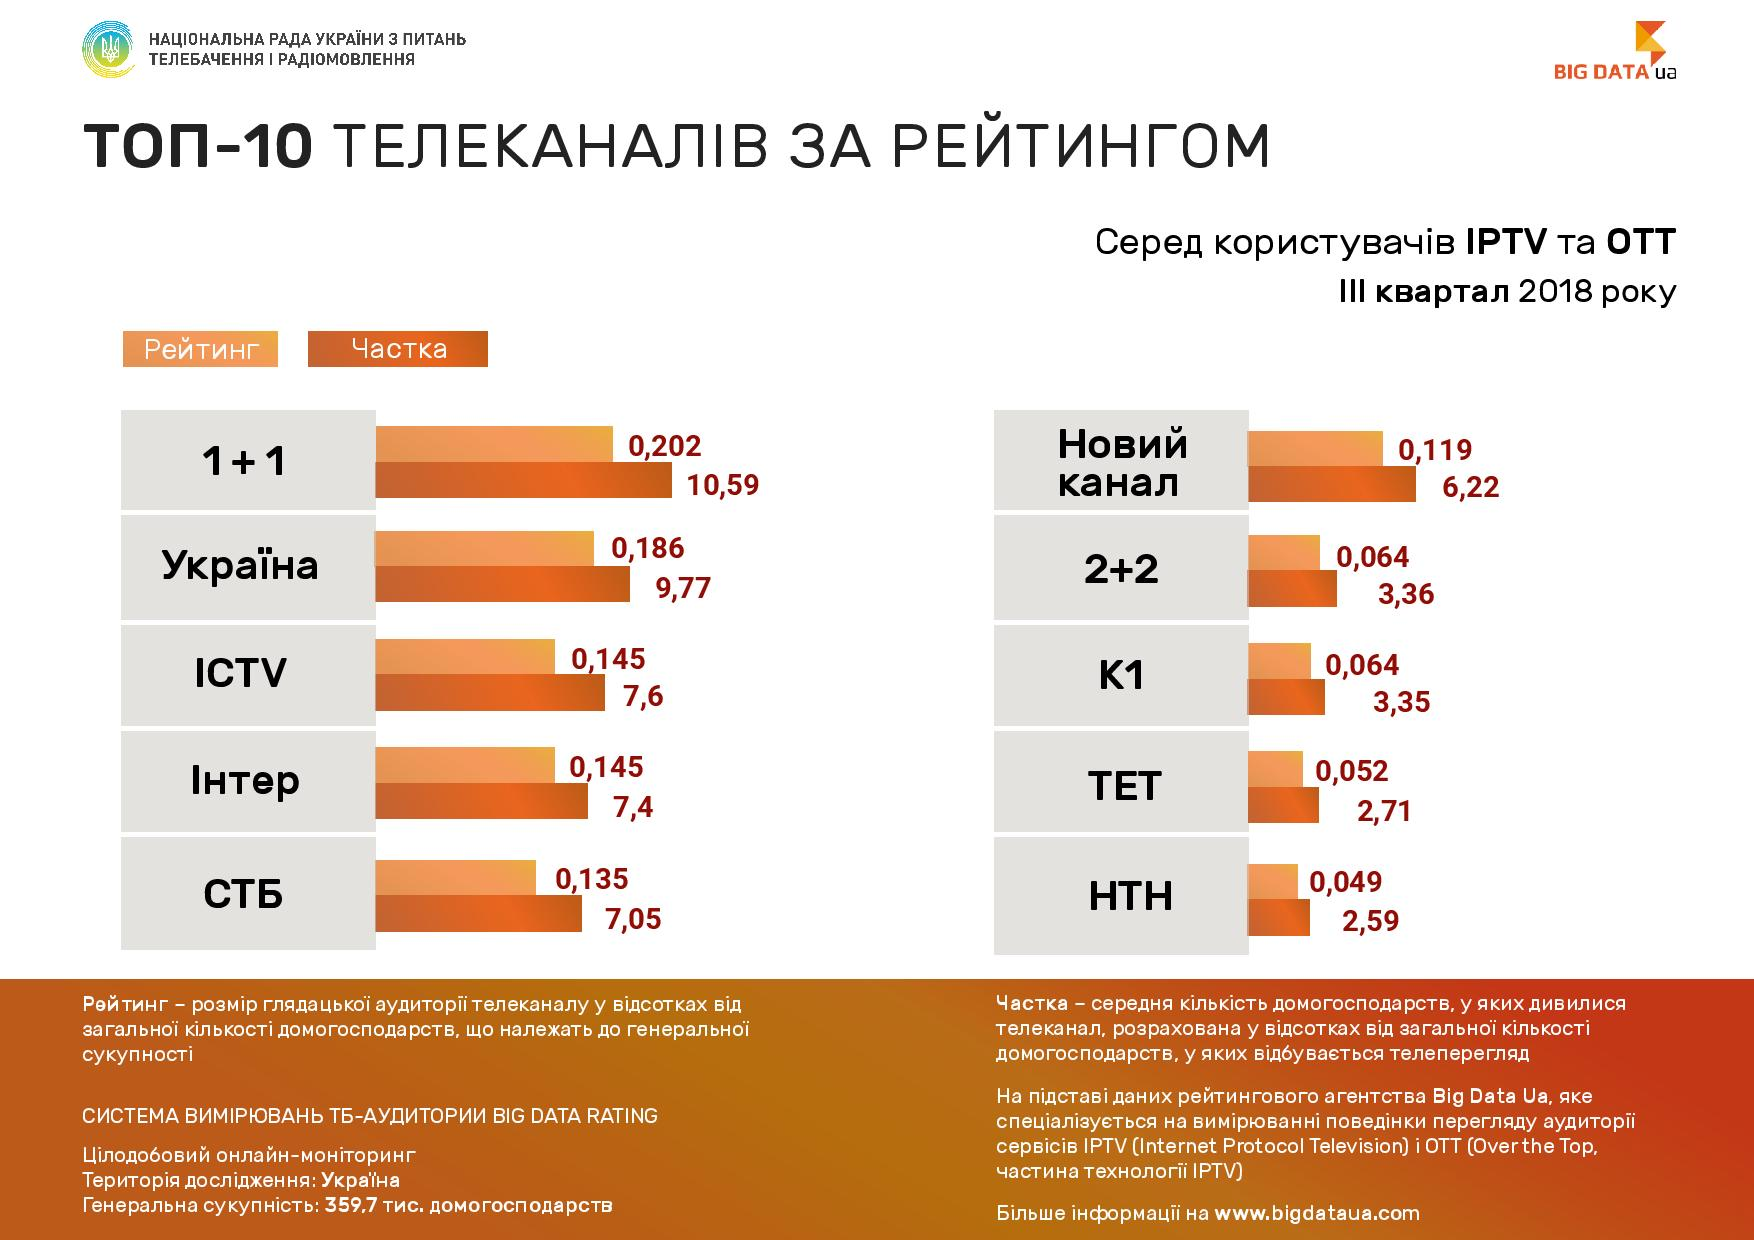 TV channel ratings among the users of the IPTV/OTT in the third